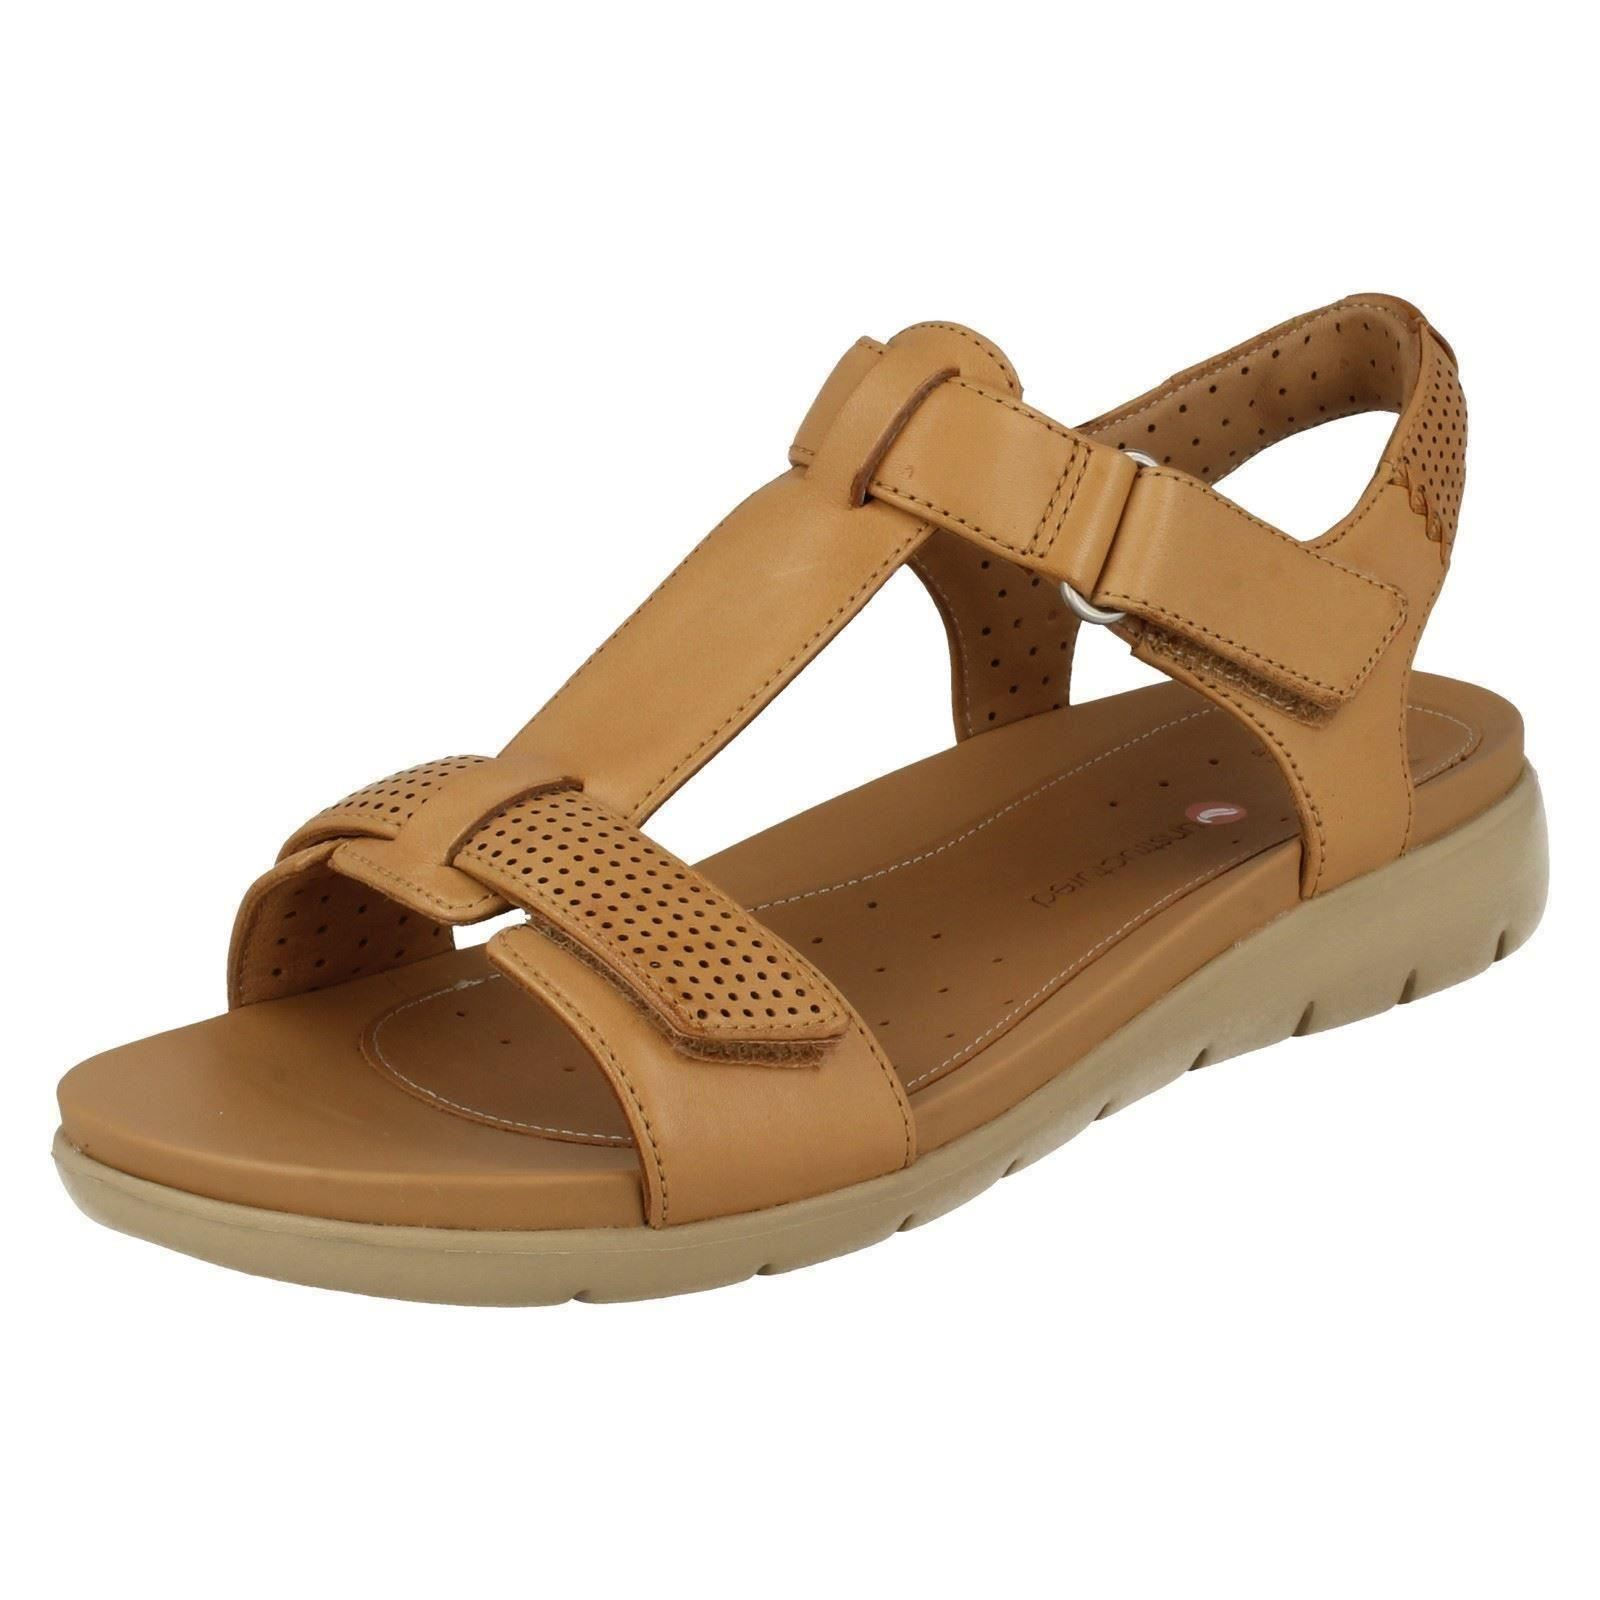 19c983252916 Ladies Clarks Unstructured Casual Sandals Un Haywood Light Tan Leather UK  4.5 D. About this product. Picture 1 of 10  Picture 2 of 10 ...